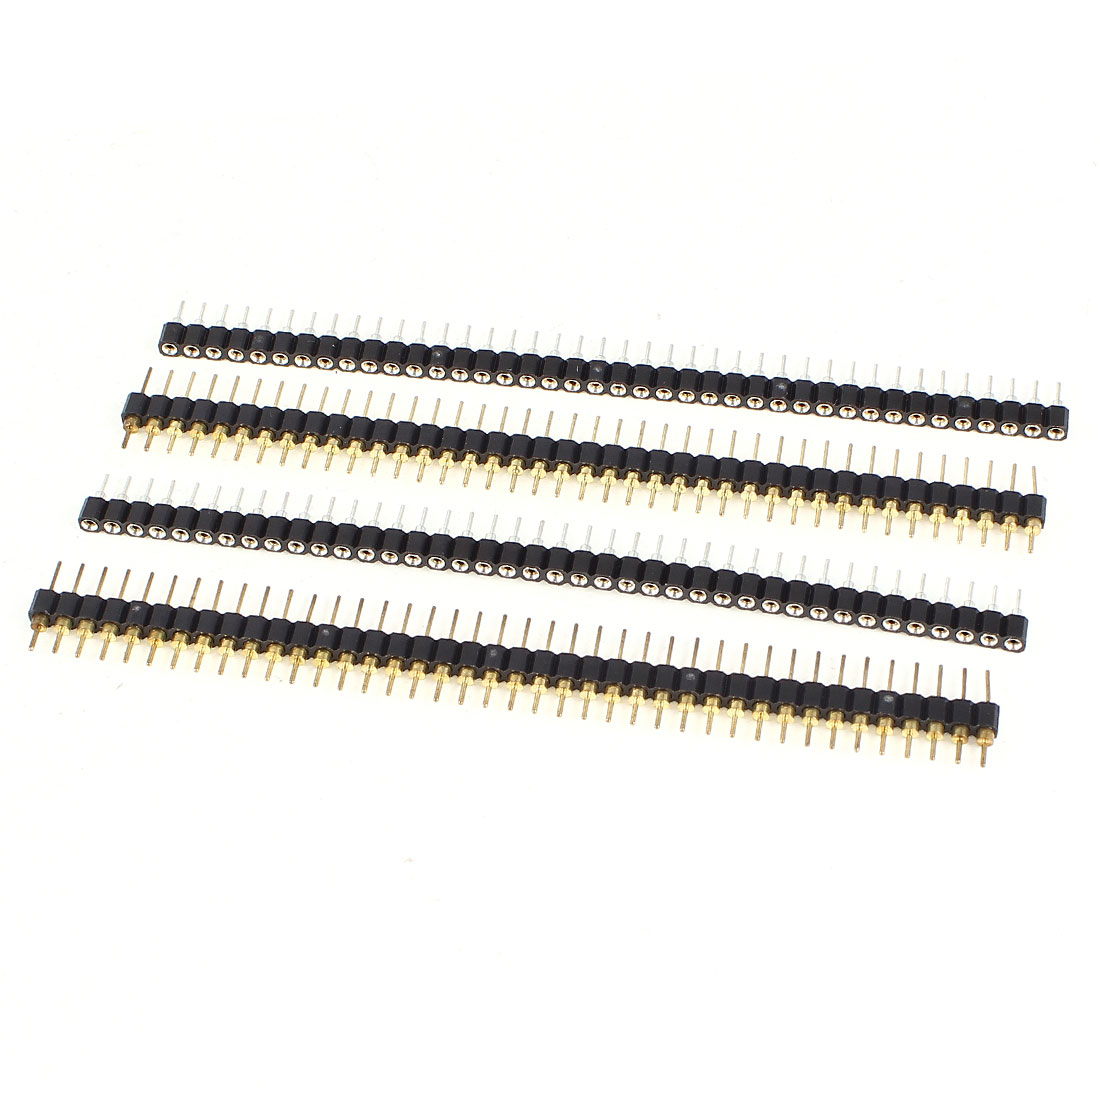 2 Sets 40 Way 40Pin Single Row Straight Pin Header Male + Female Connector